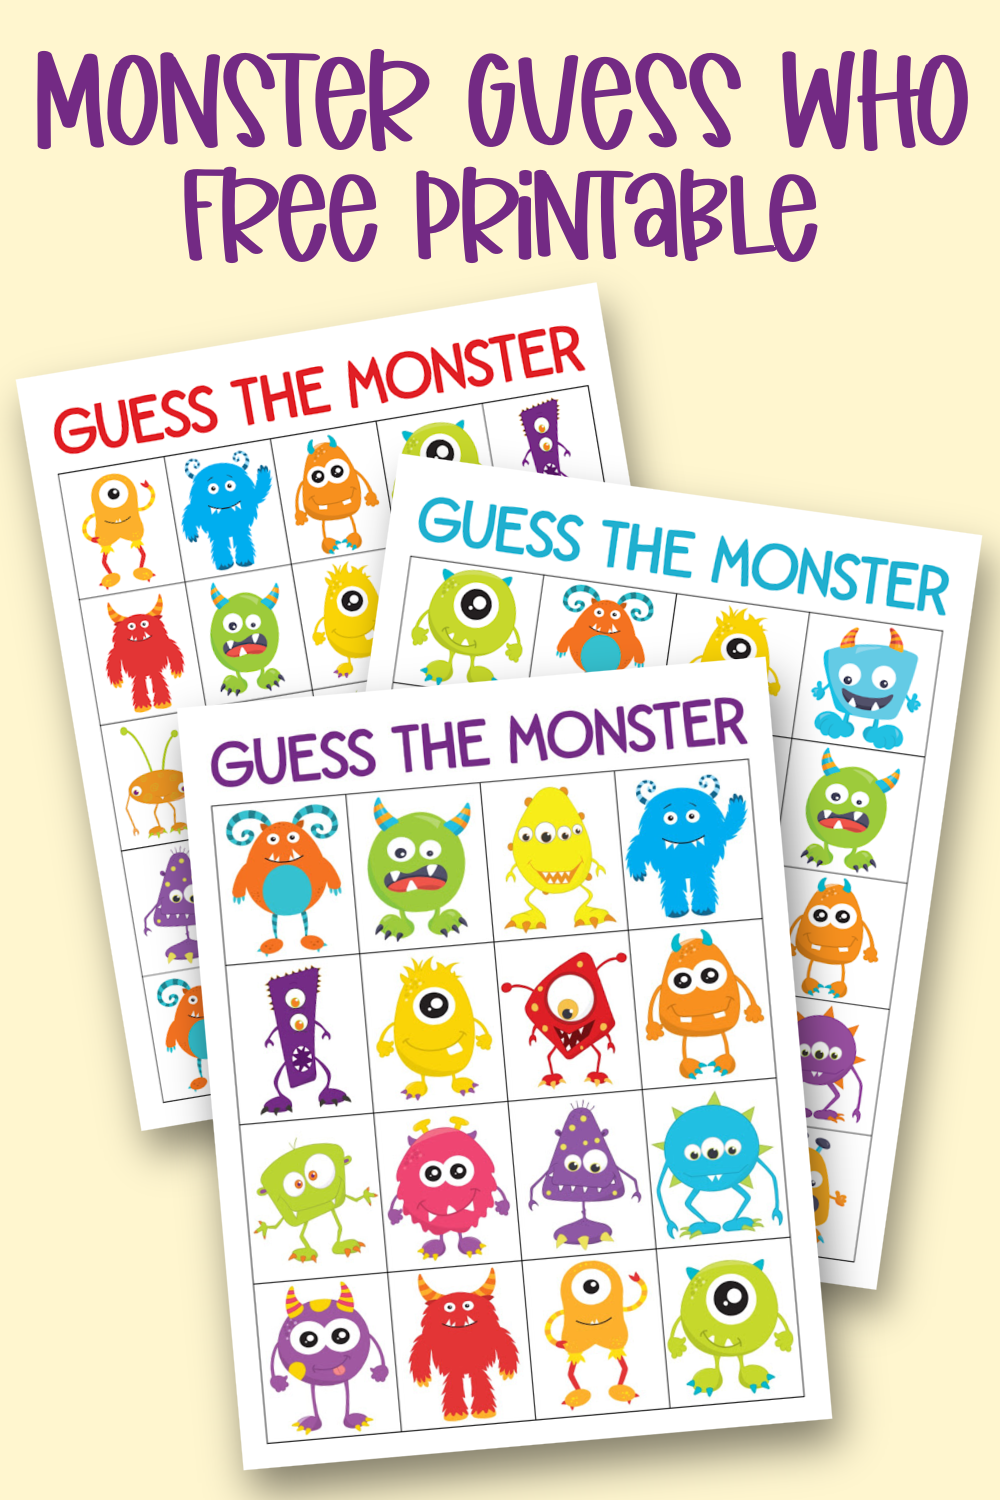 Monster Guess Who Free Printable Game